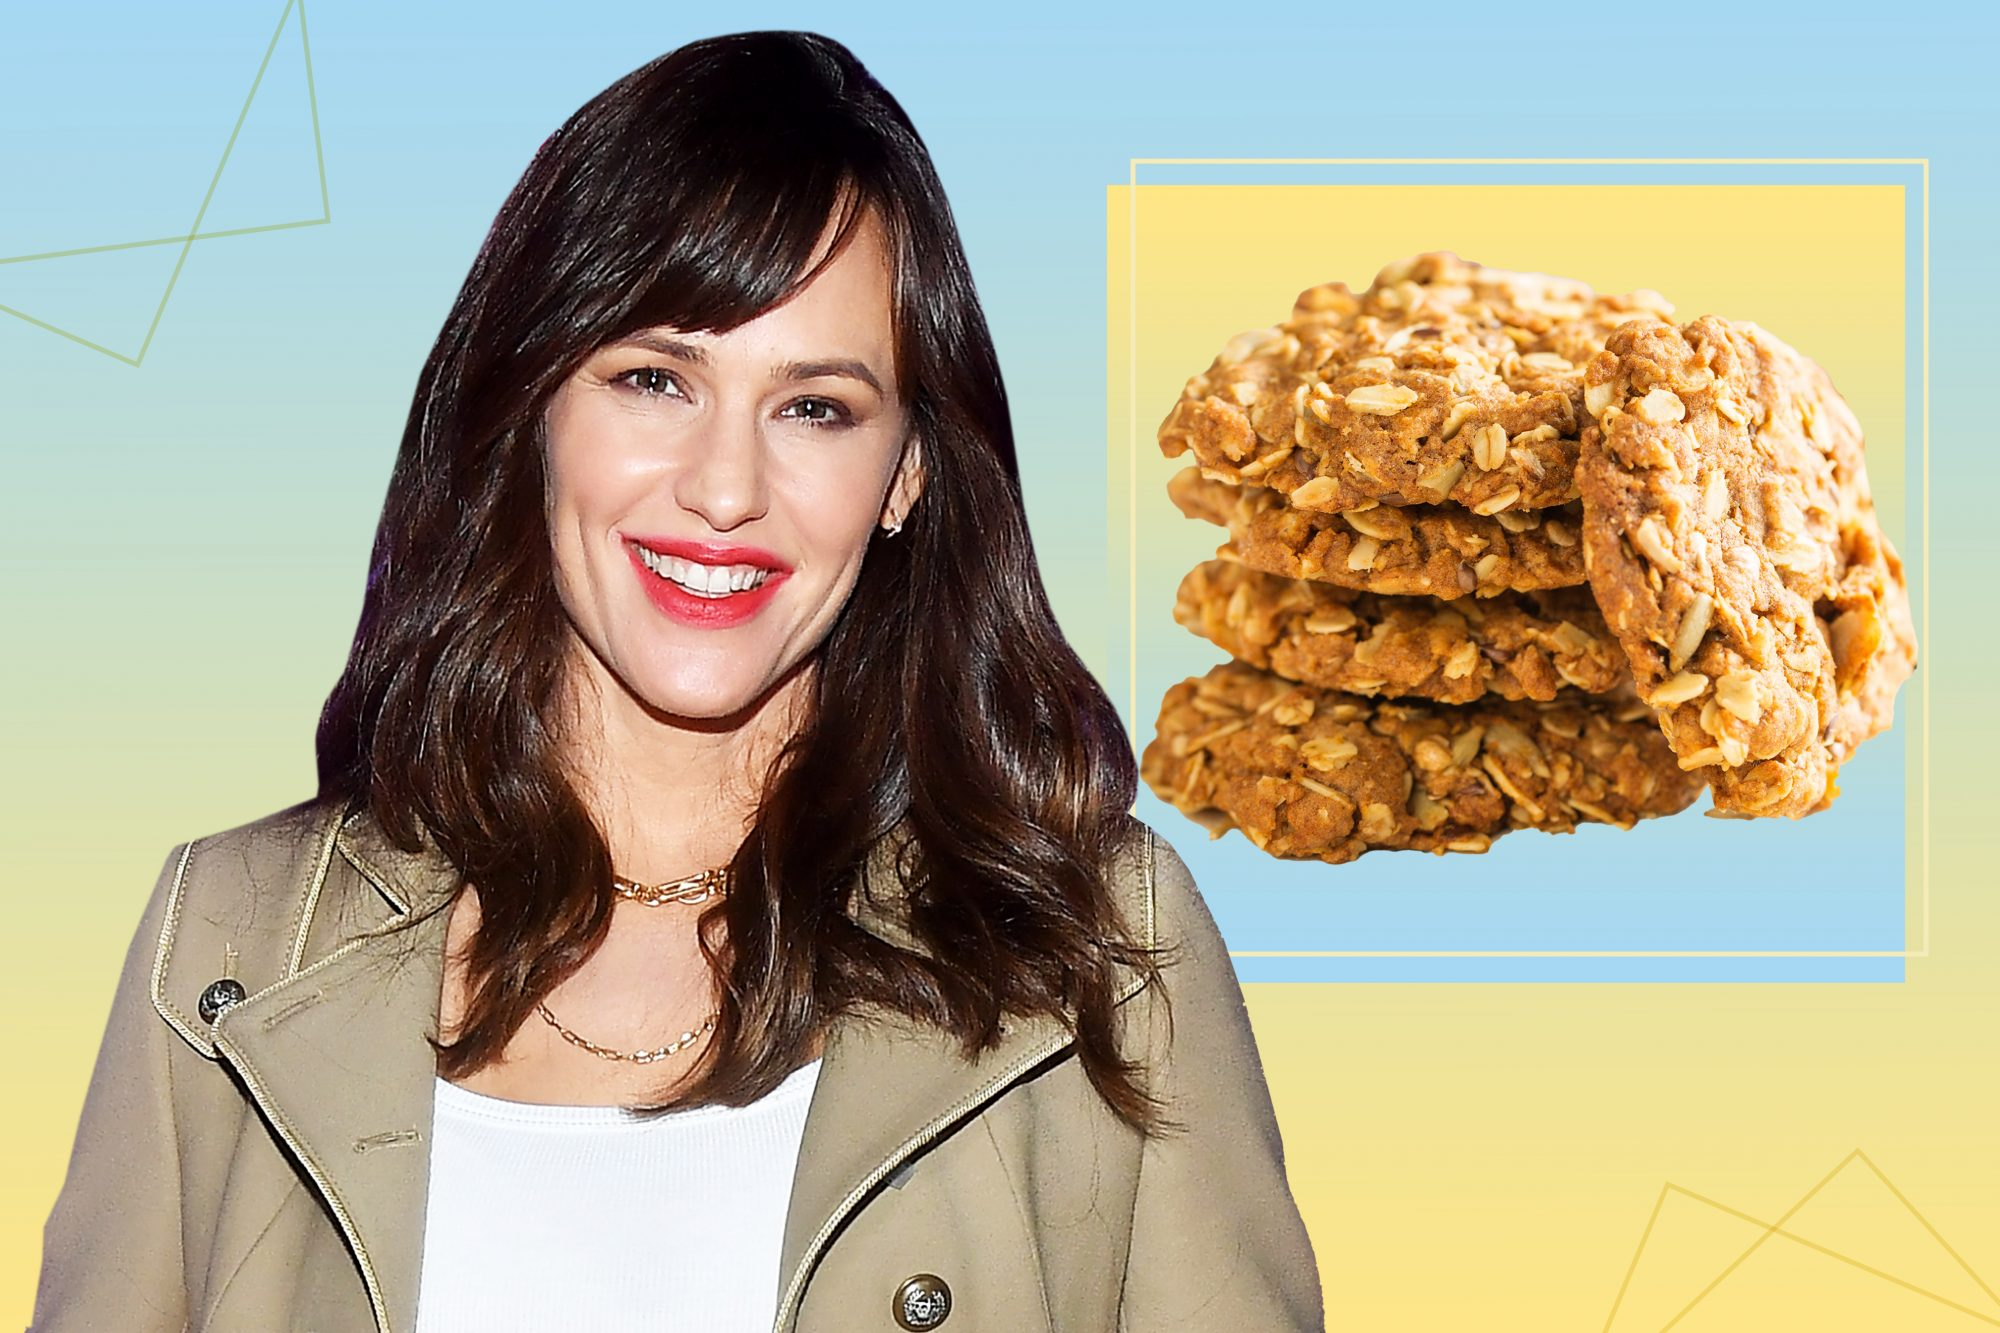 Jennifer-Garner-and-Her-Mom-Made-Brown-Butter-Oatmeal-Cookies-And-They-Look-Incredible-GettyImages-1306918552-AdobeStock_137906867